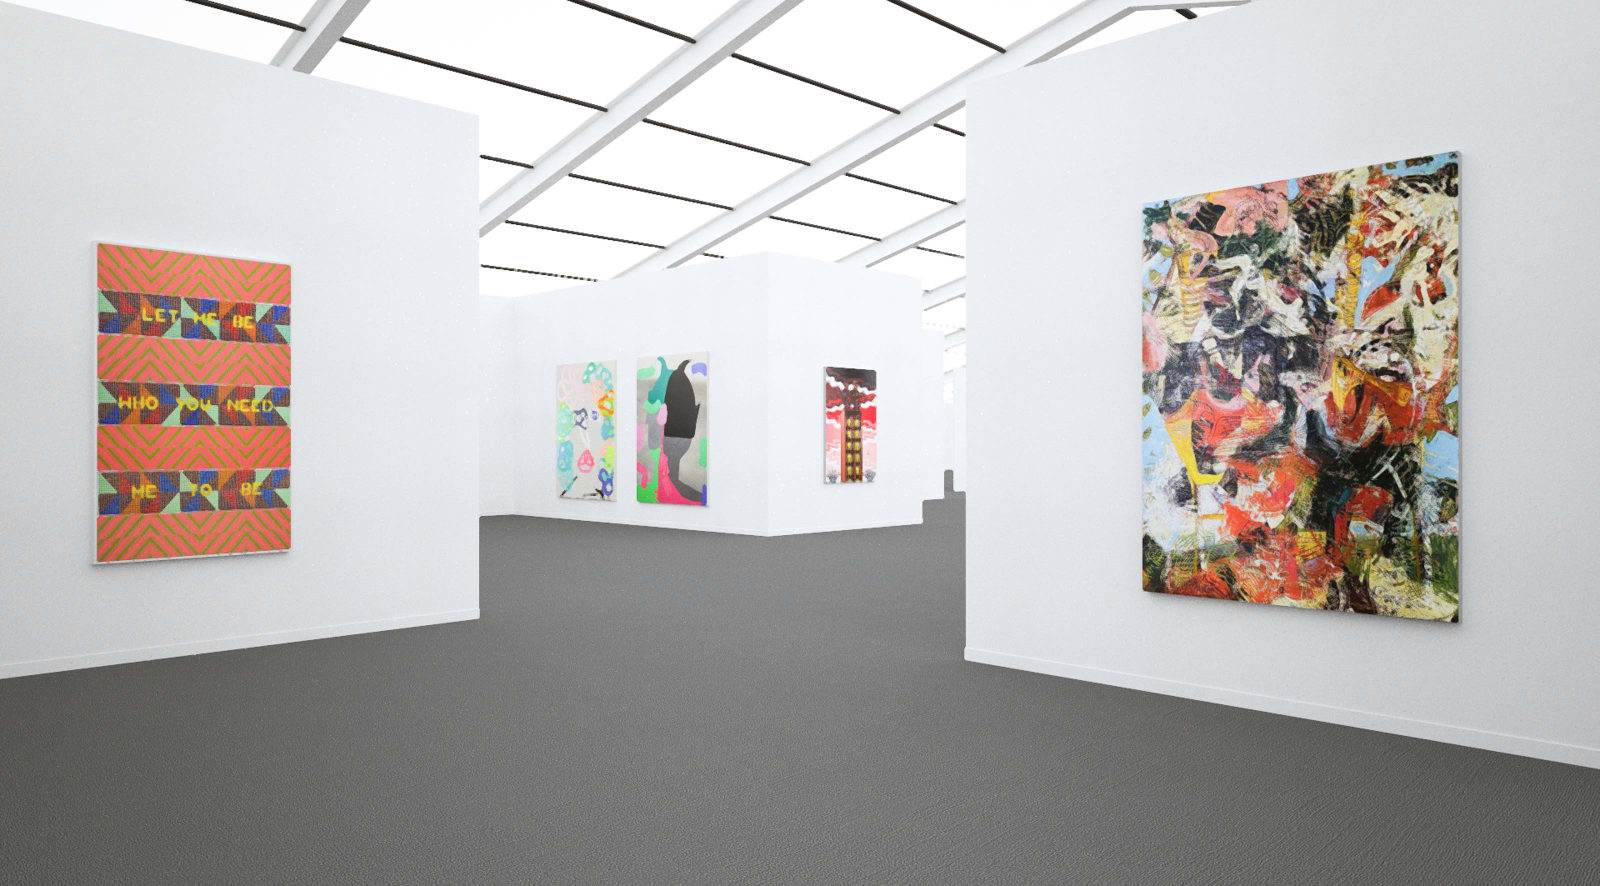 Works by Jeffrey Gibson, Jose Lerma, and Angel Otero at Frieze New York (Installation View), 2020, Kavi Gupta